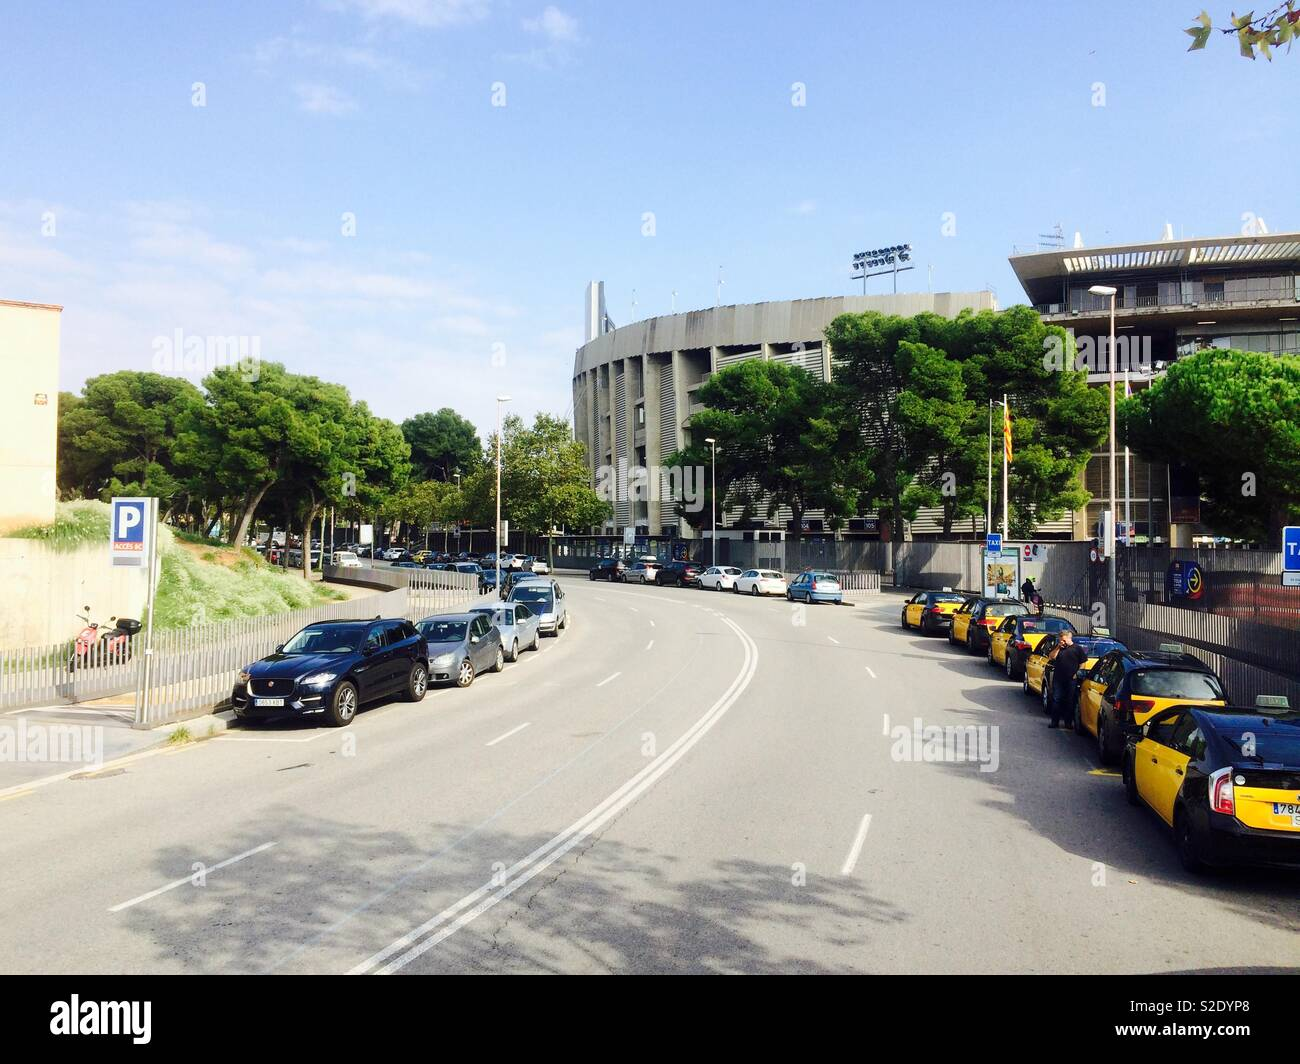 Taxis and cars parked in the street at the Camp Nou football stadium in Barcelona Spain - Stock Image